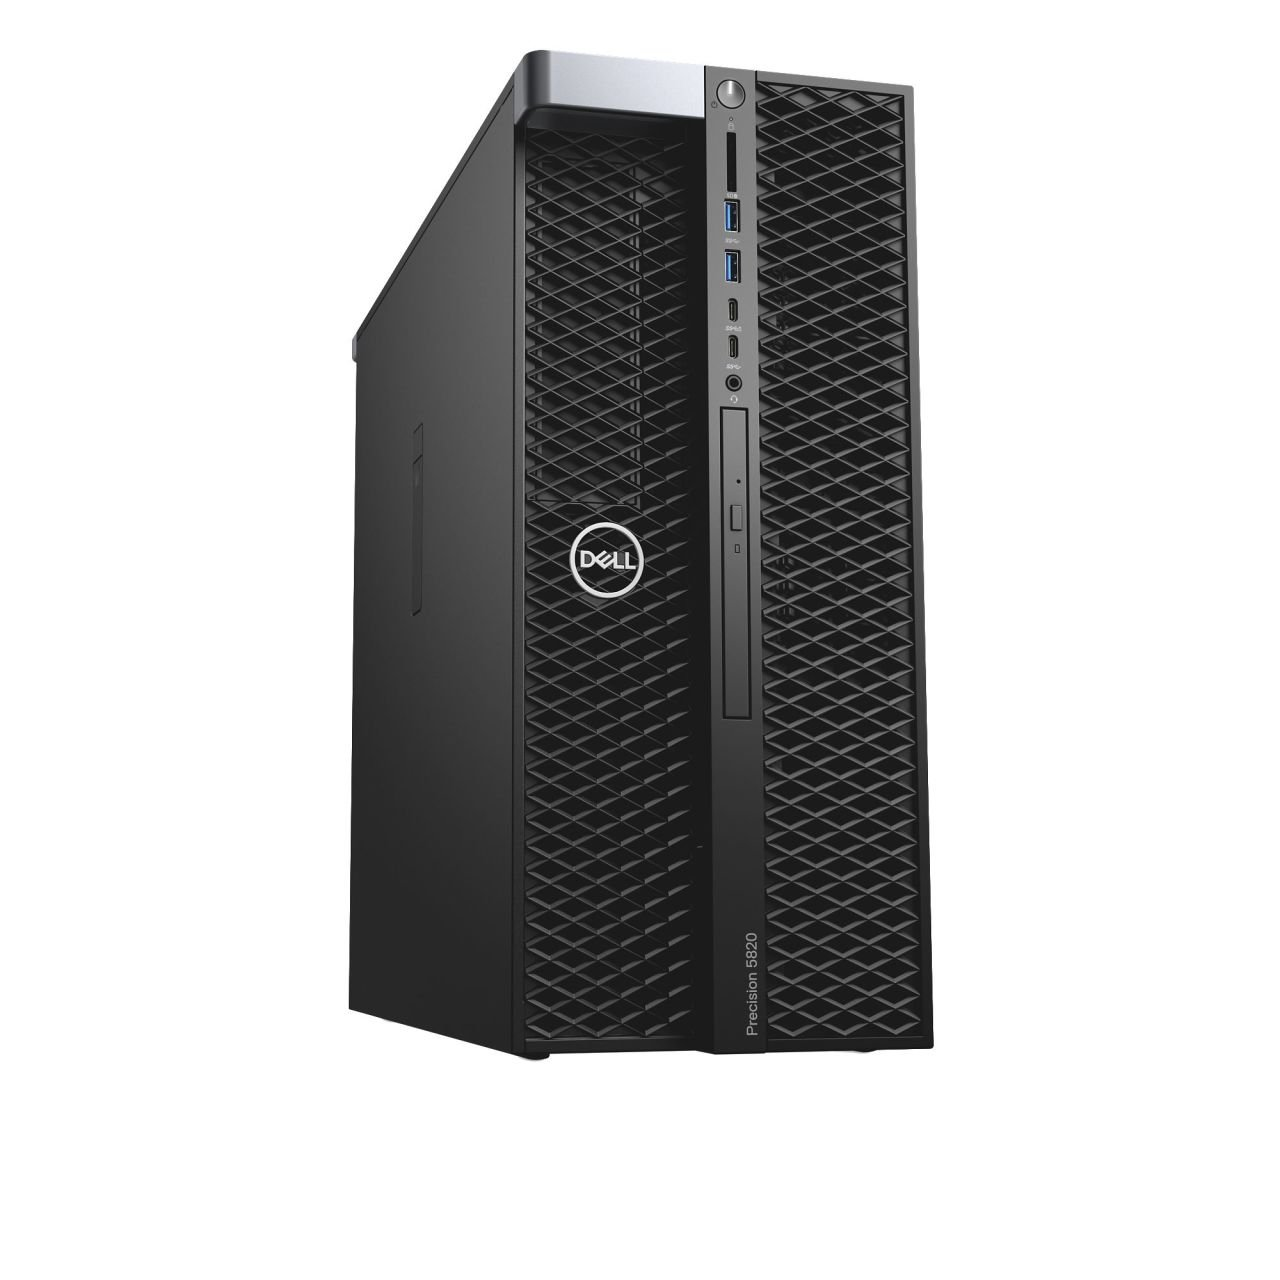 DELL PRECISION T5820 XEON W-2145 3.7GHz 16GB (2x8GB) 256GB M2 SSD 1x950W WIN10 PRO WORKSTATION